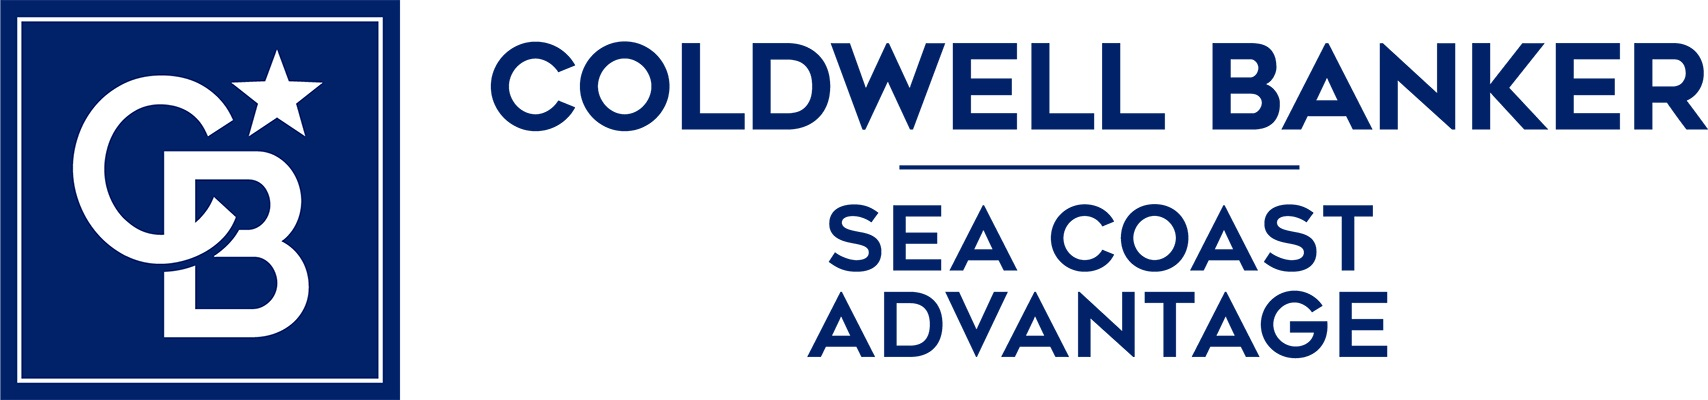 Beth Fortunato - Coldwell Banker Sea Coast Advantage Realty